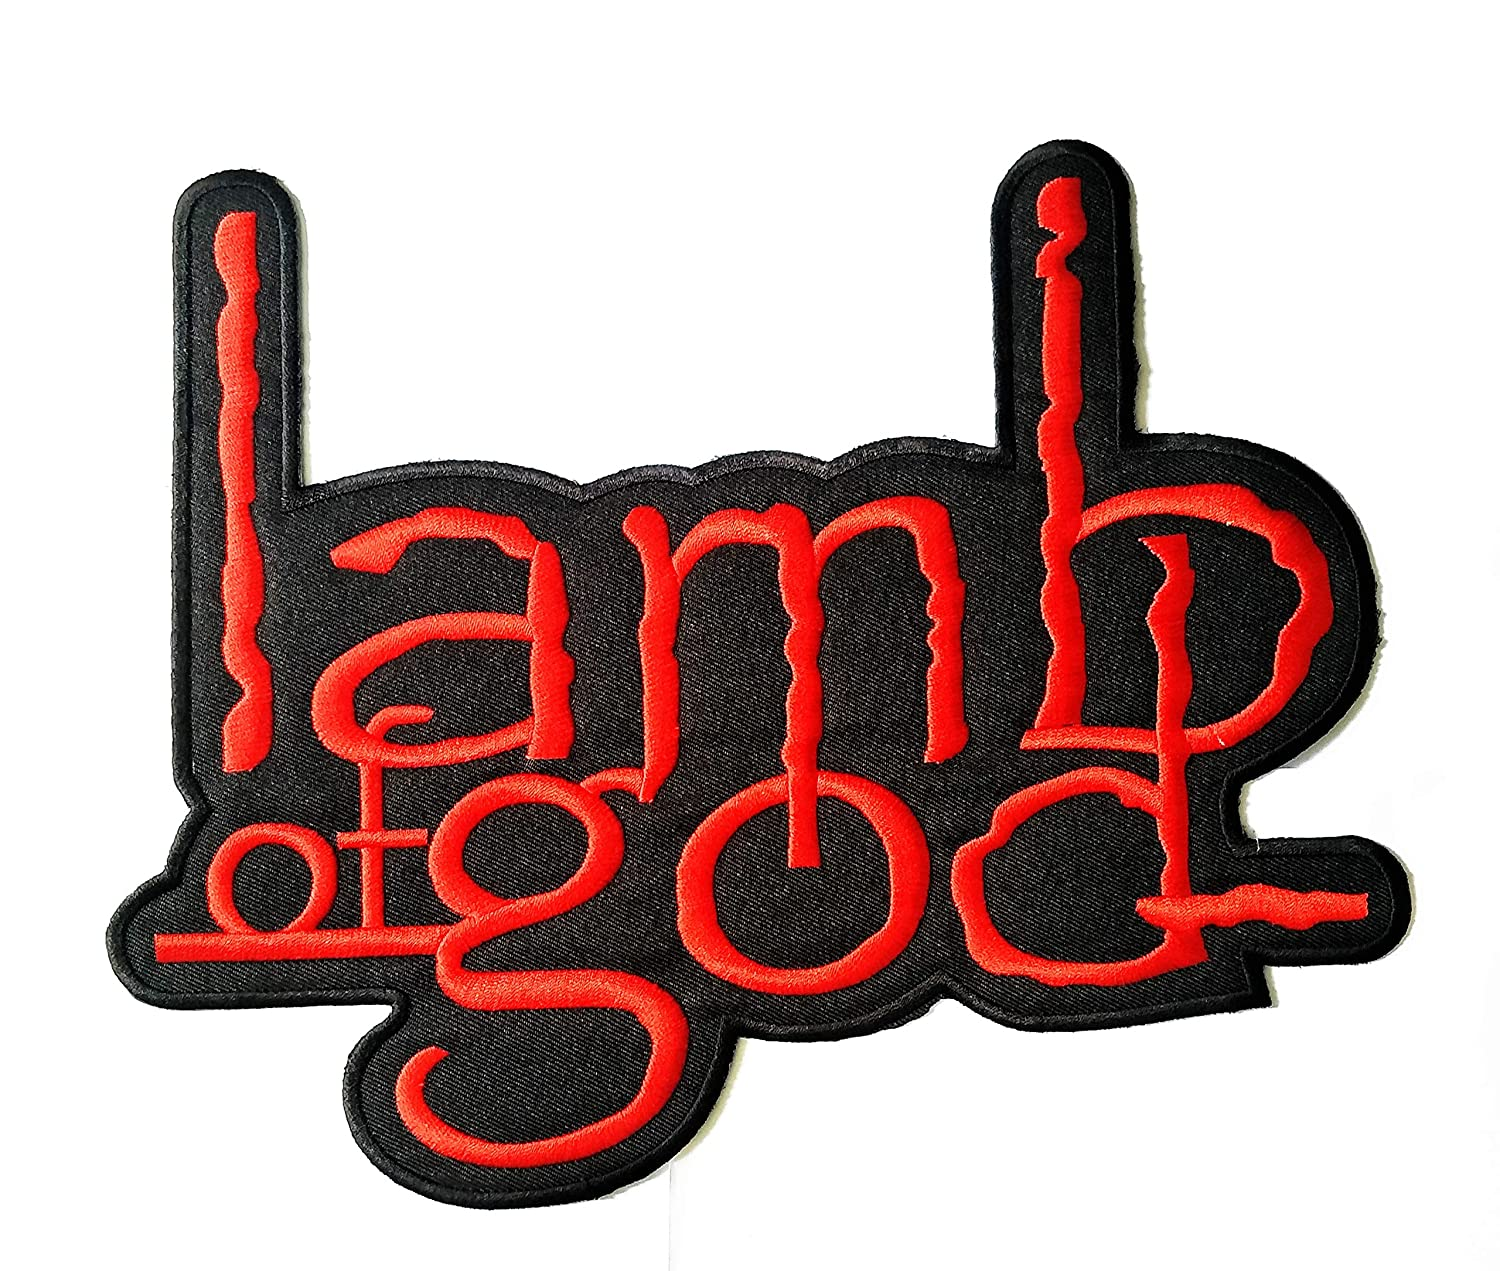 8.5 ''X 10'' Big Jumbo Black Red Lamb of god Music Band Logo Jacket t-Shirt Jeans Polo Patch Iron on Embroidered Logo Motorcycle Rider Biker Patch by Tour les jours Shop